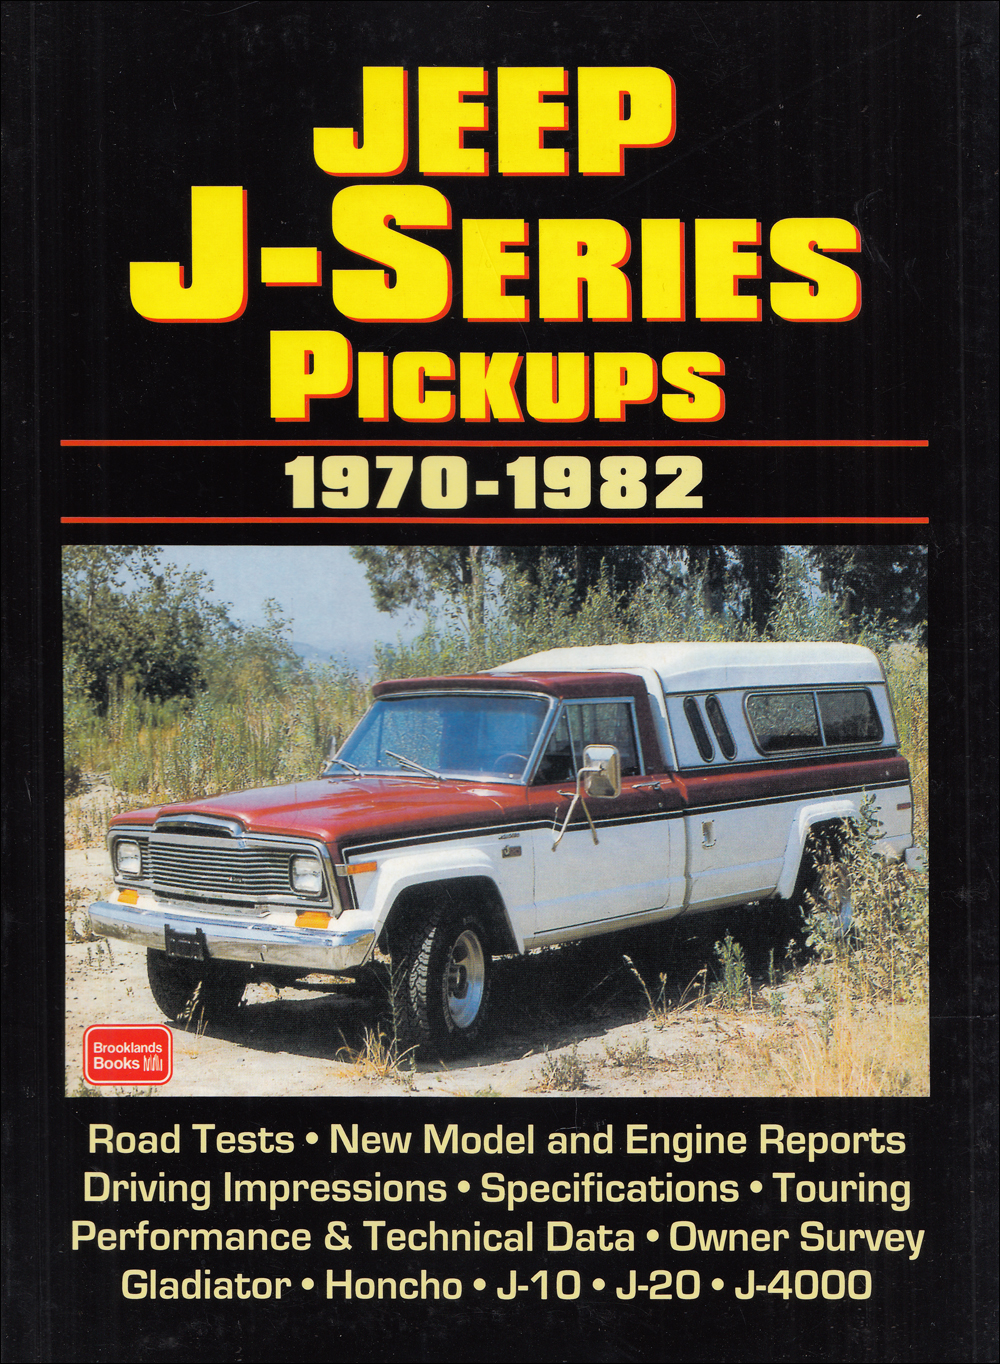 Book of 26 magazine articles 1970-1982 Jeep Pickup Gladiator J-10 J-20 Honcho